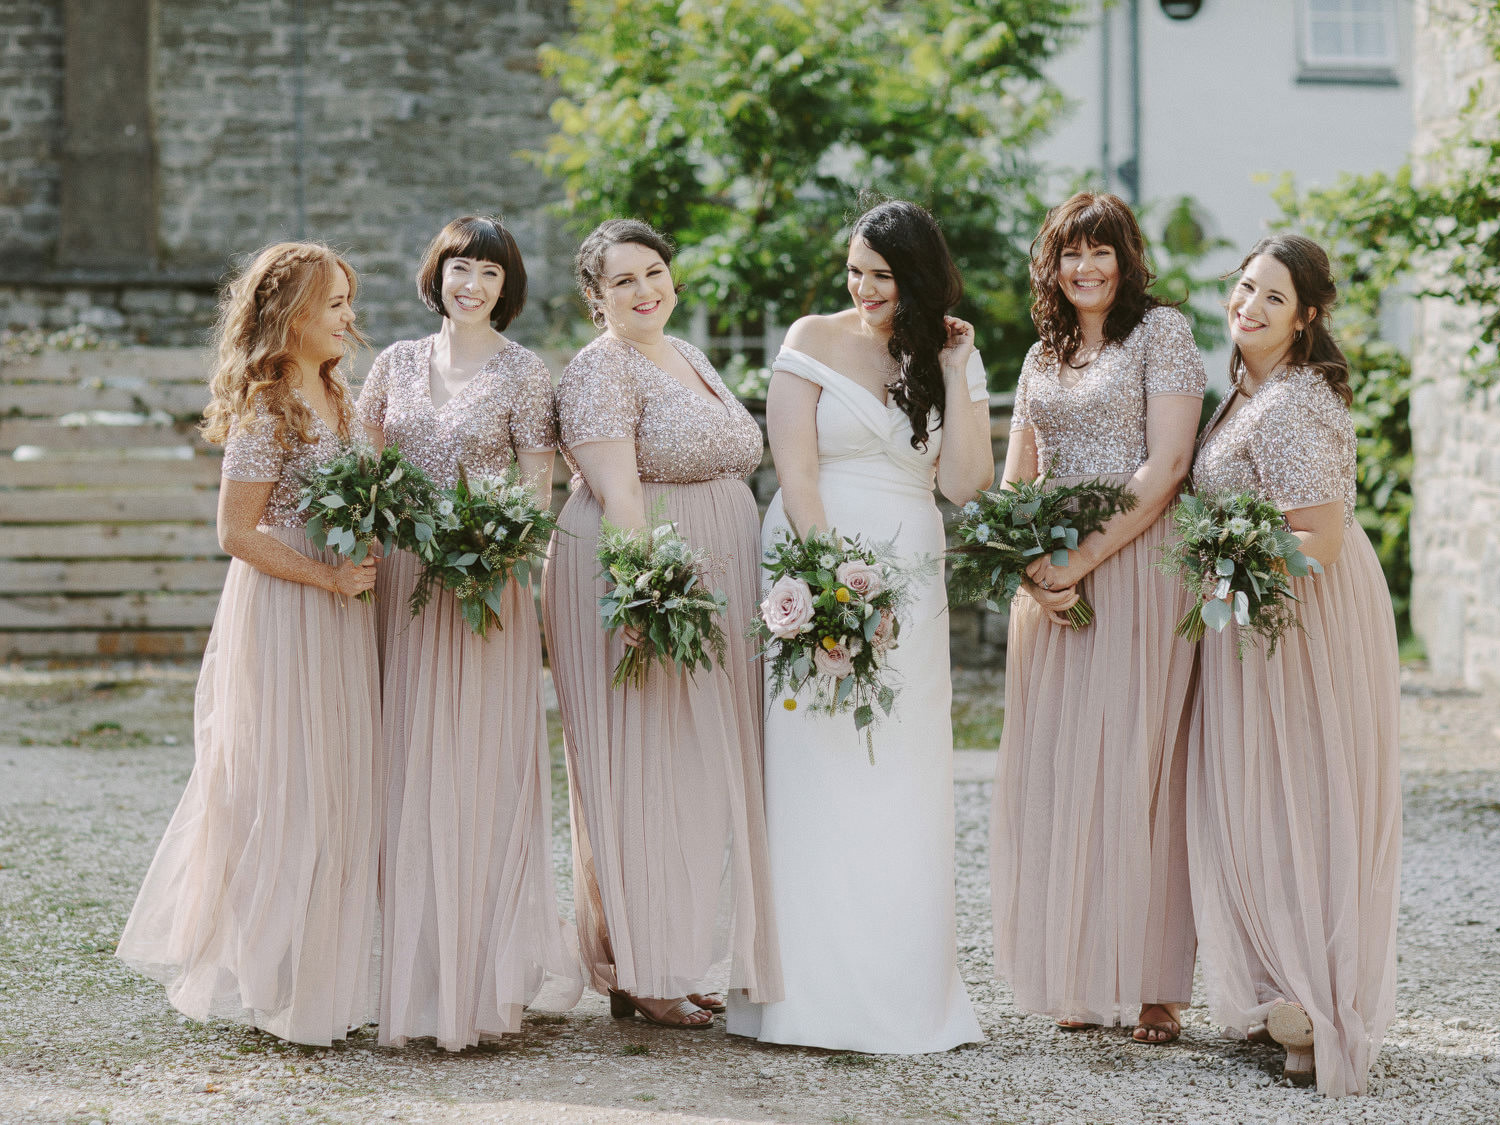 bridesmaids with sequin tops and bride laugh outside holding green and white bouquets